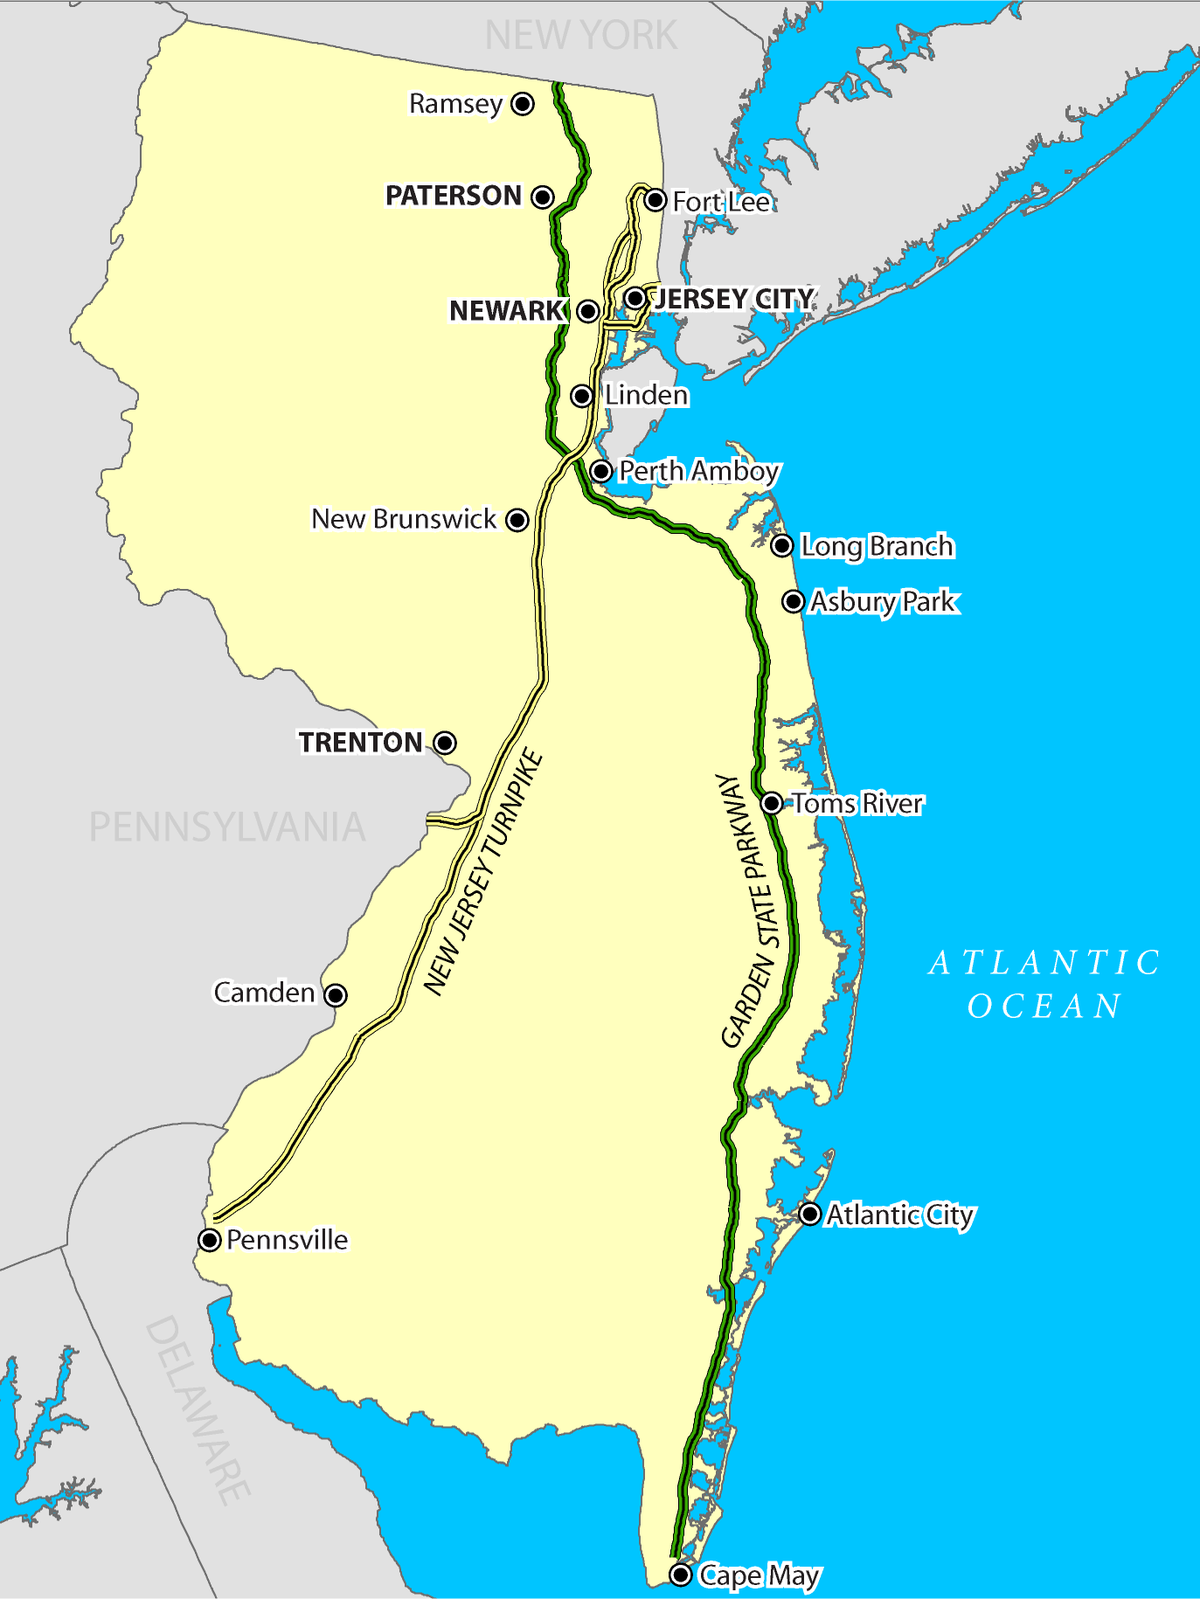 A map of New Jersey showing the Garden State Parkway and New Jersey Turnpike